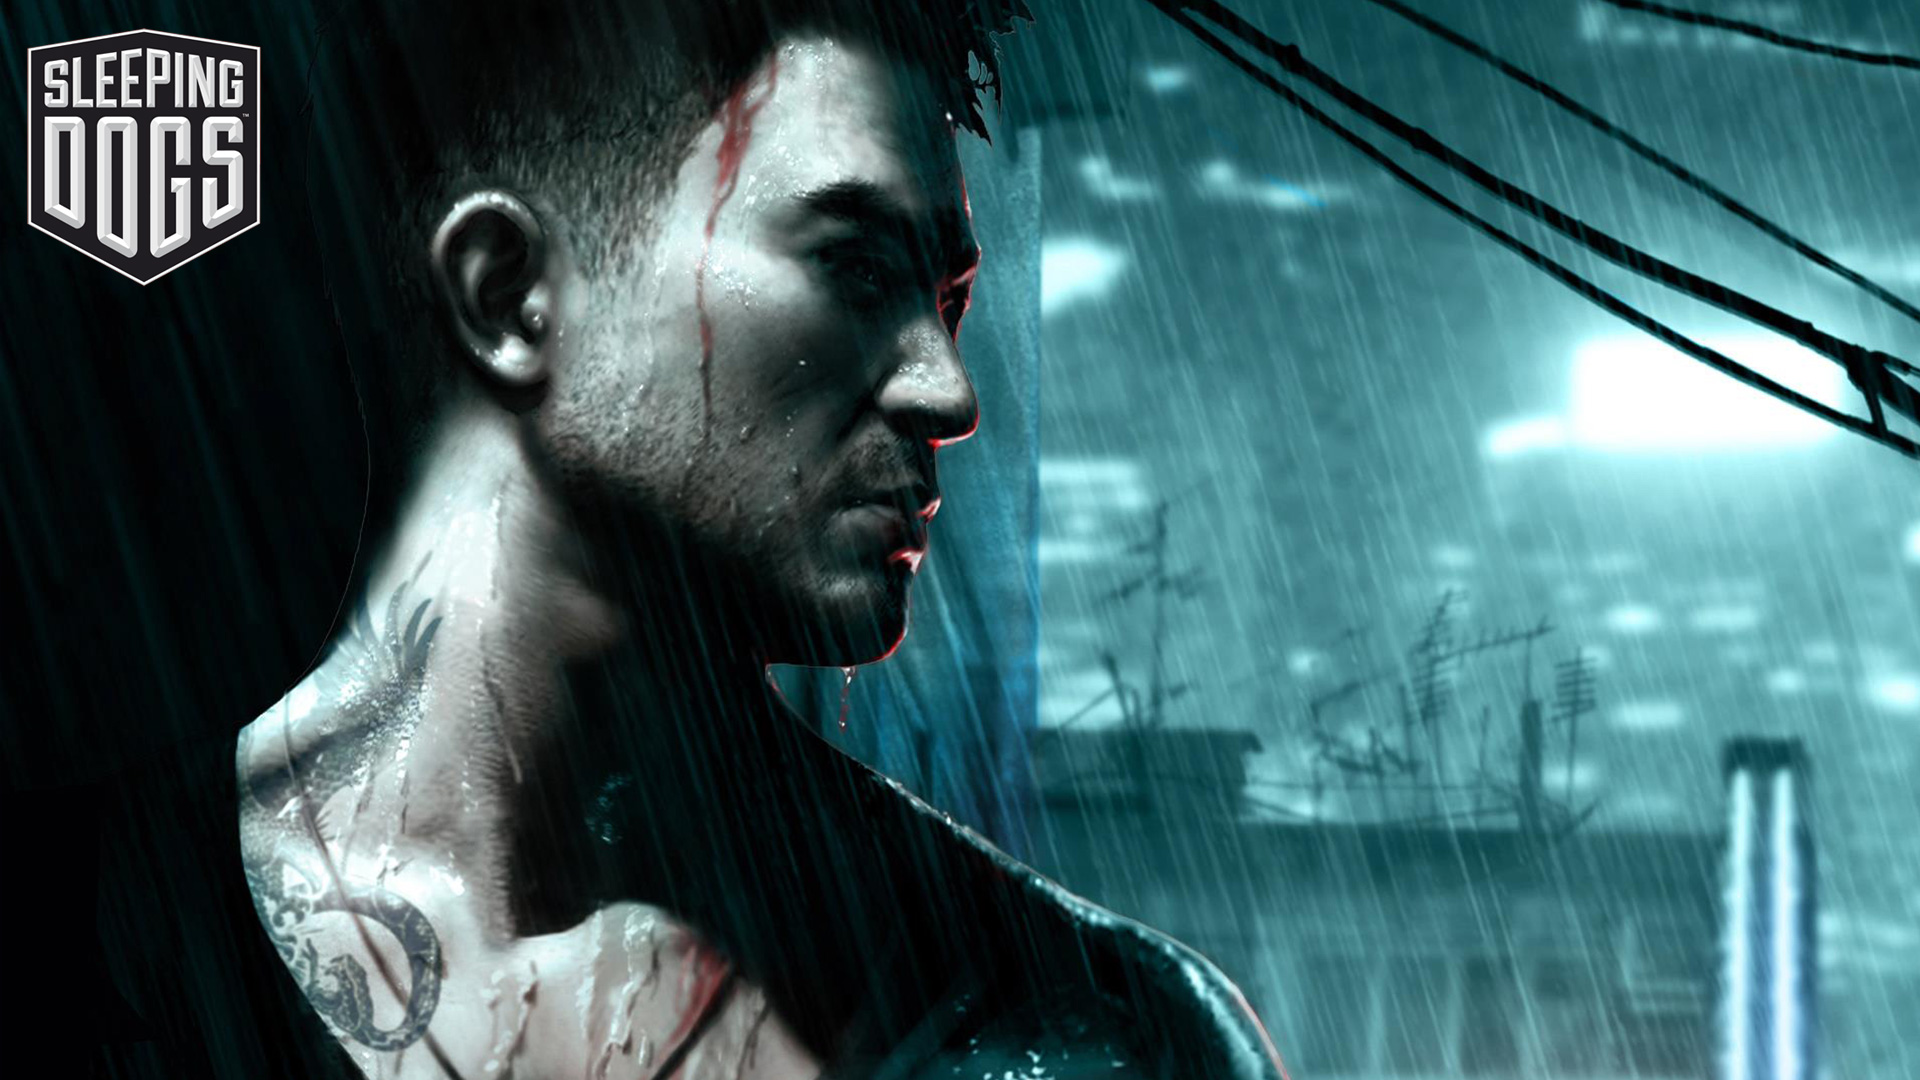 Sleeping Dogs Definitive Edition Details Launchbox Games Database